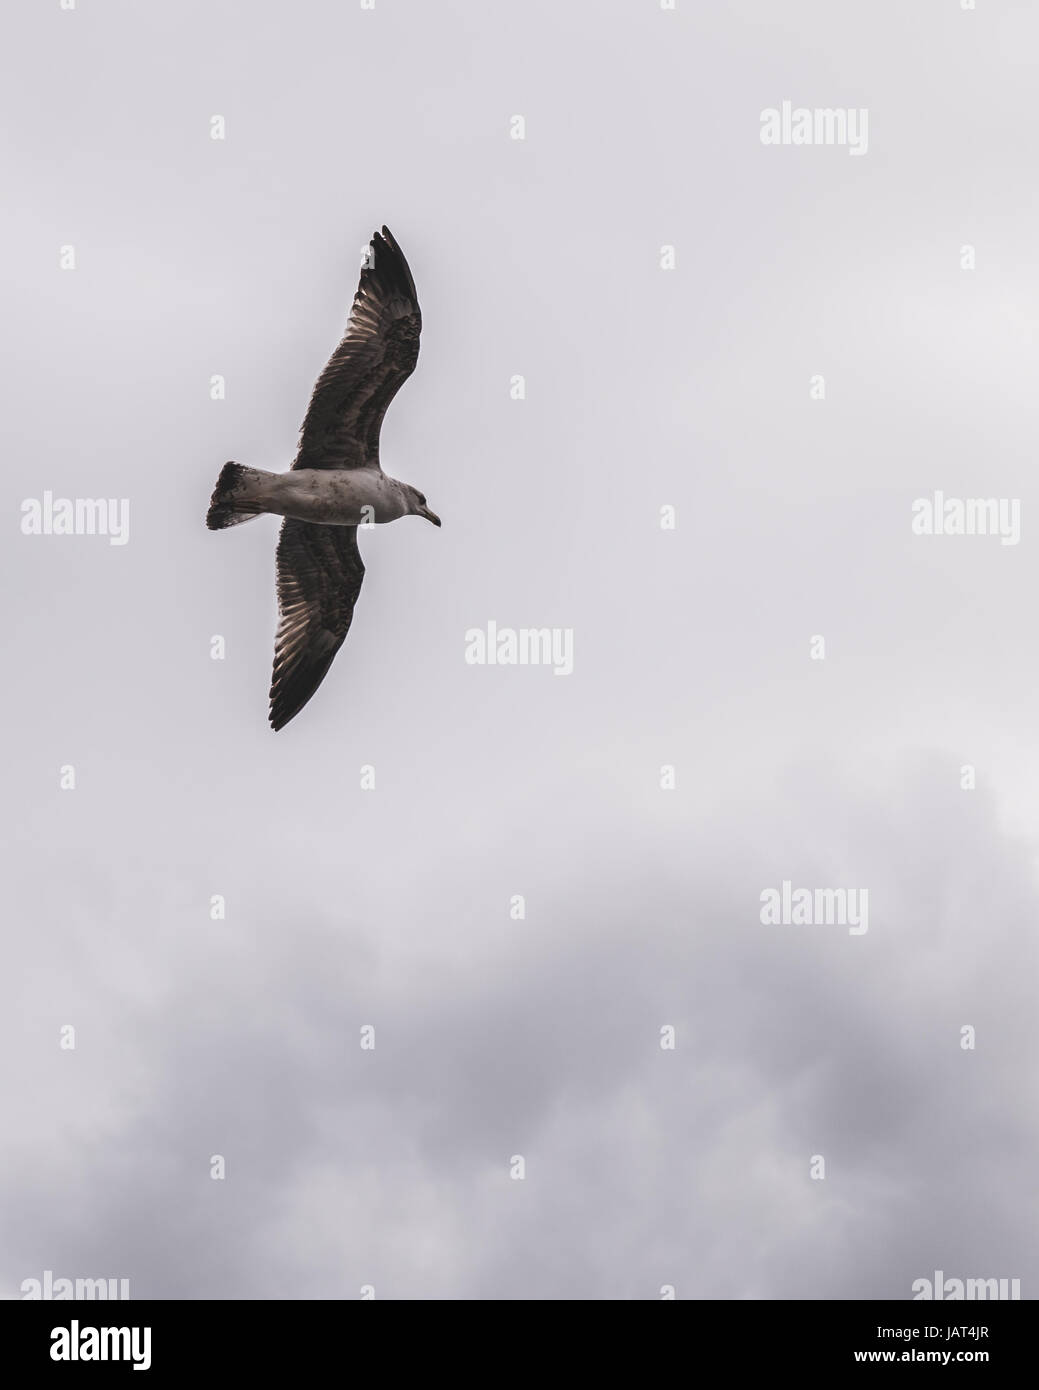 Seagull in flight above the Atlantic Ocean, Madeira gulls, Portugal - Stock Image